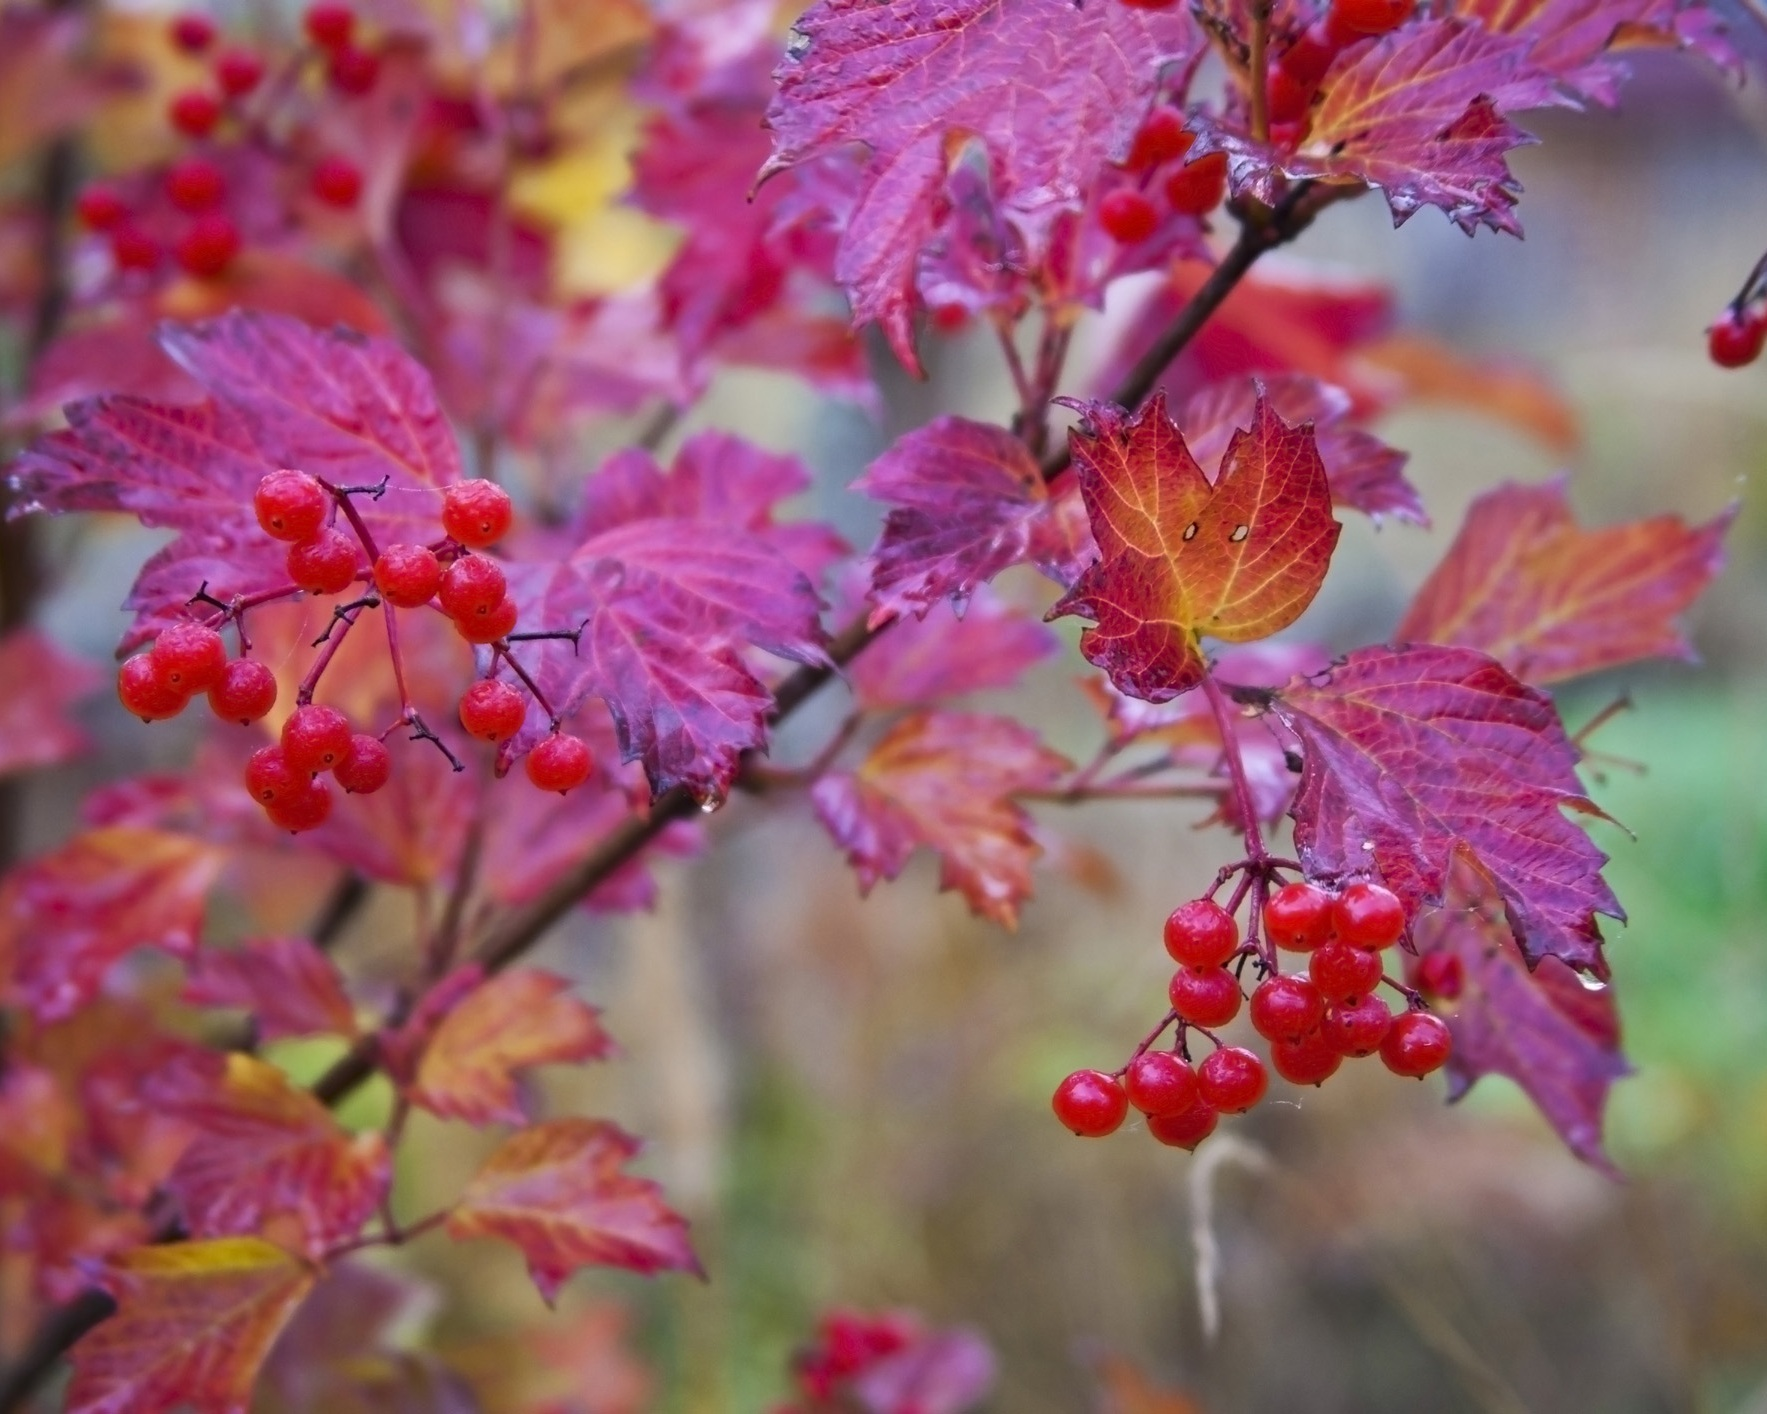 Viburnum+berries+in+autumn.jpg